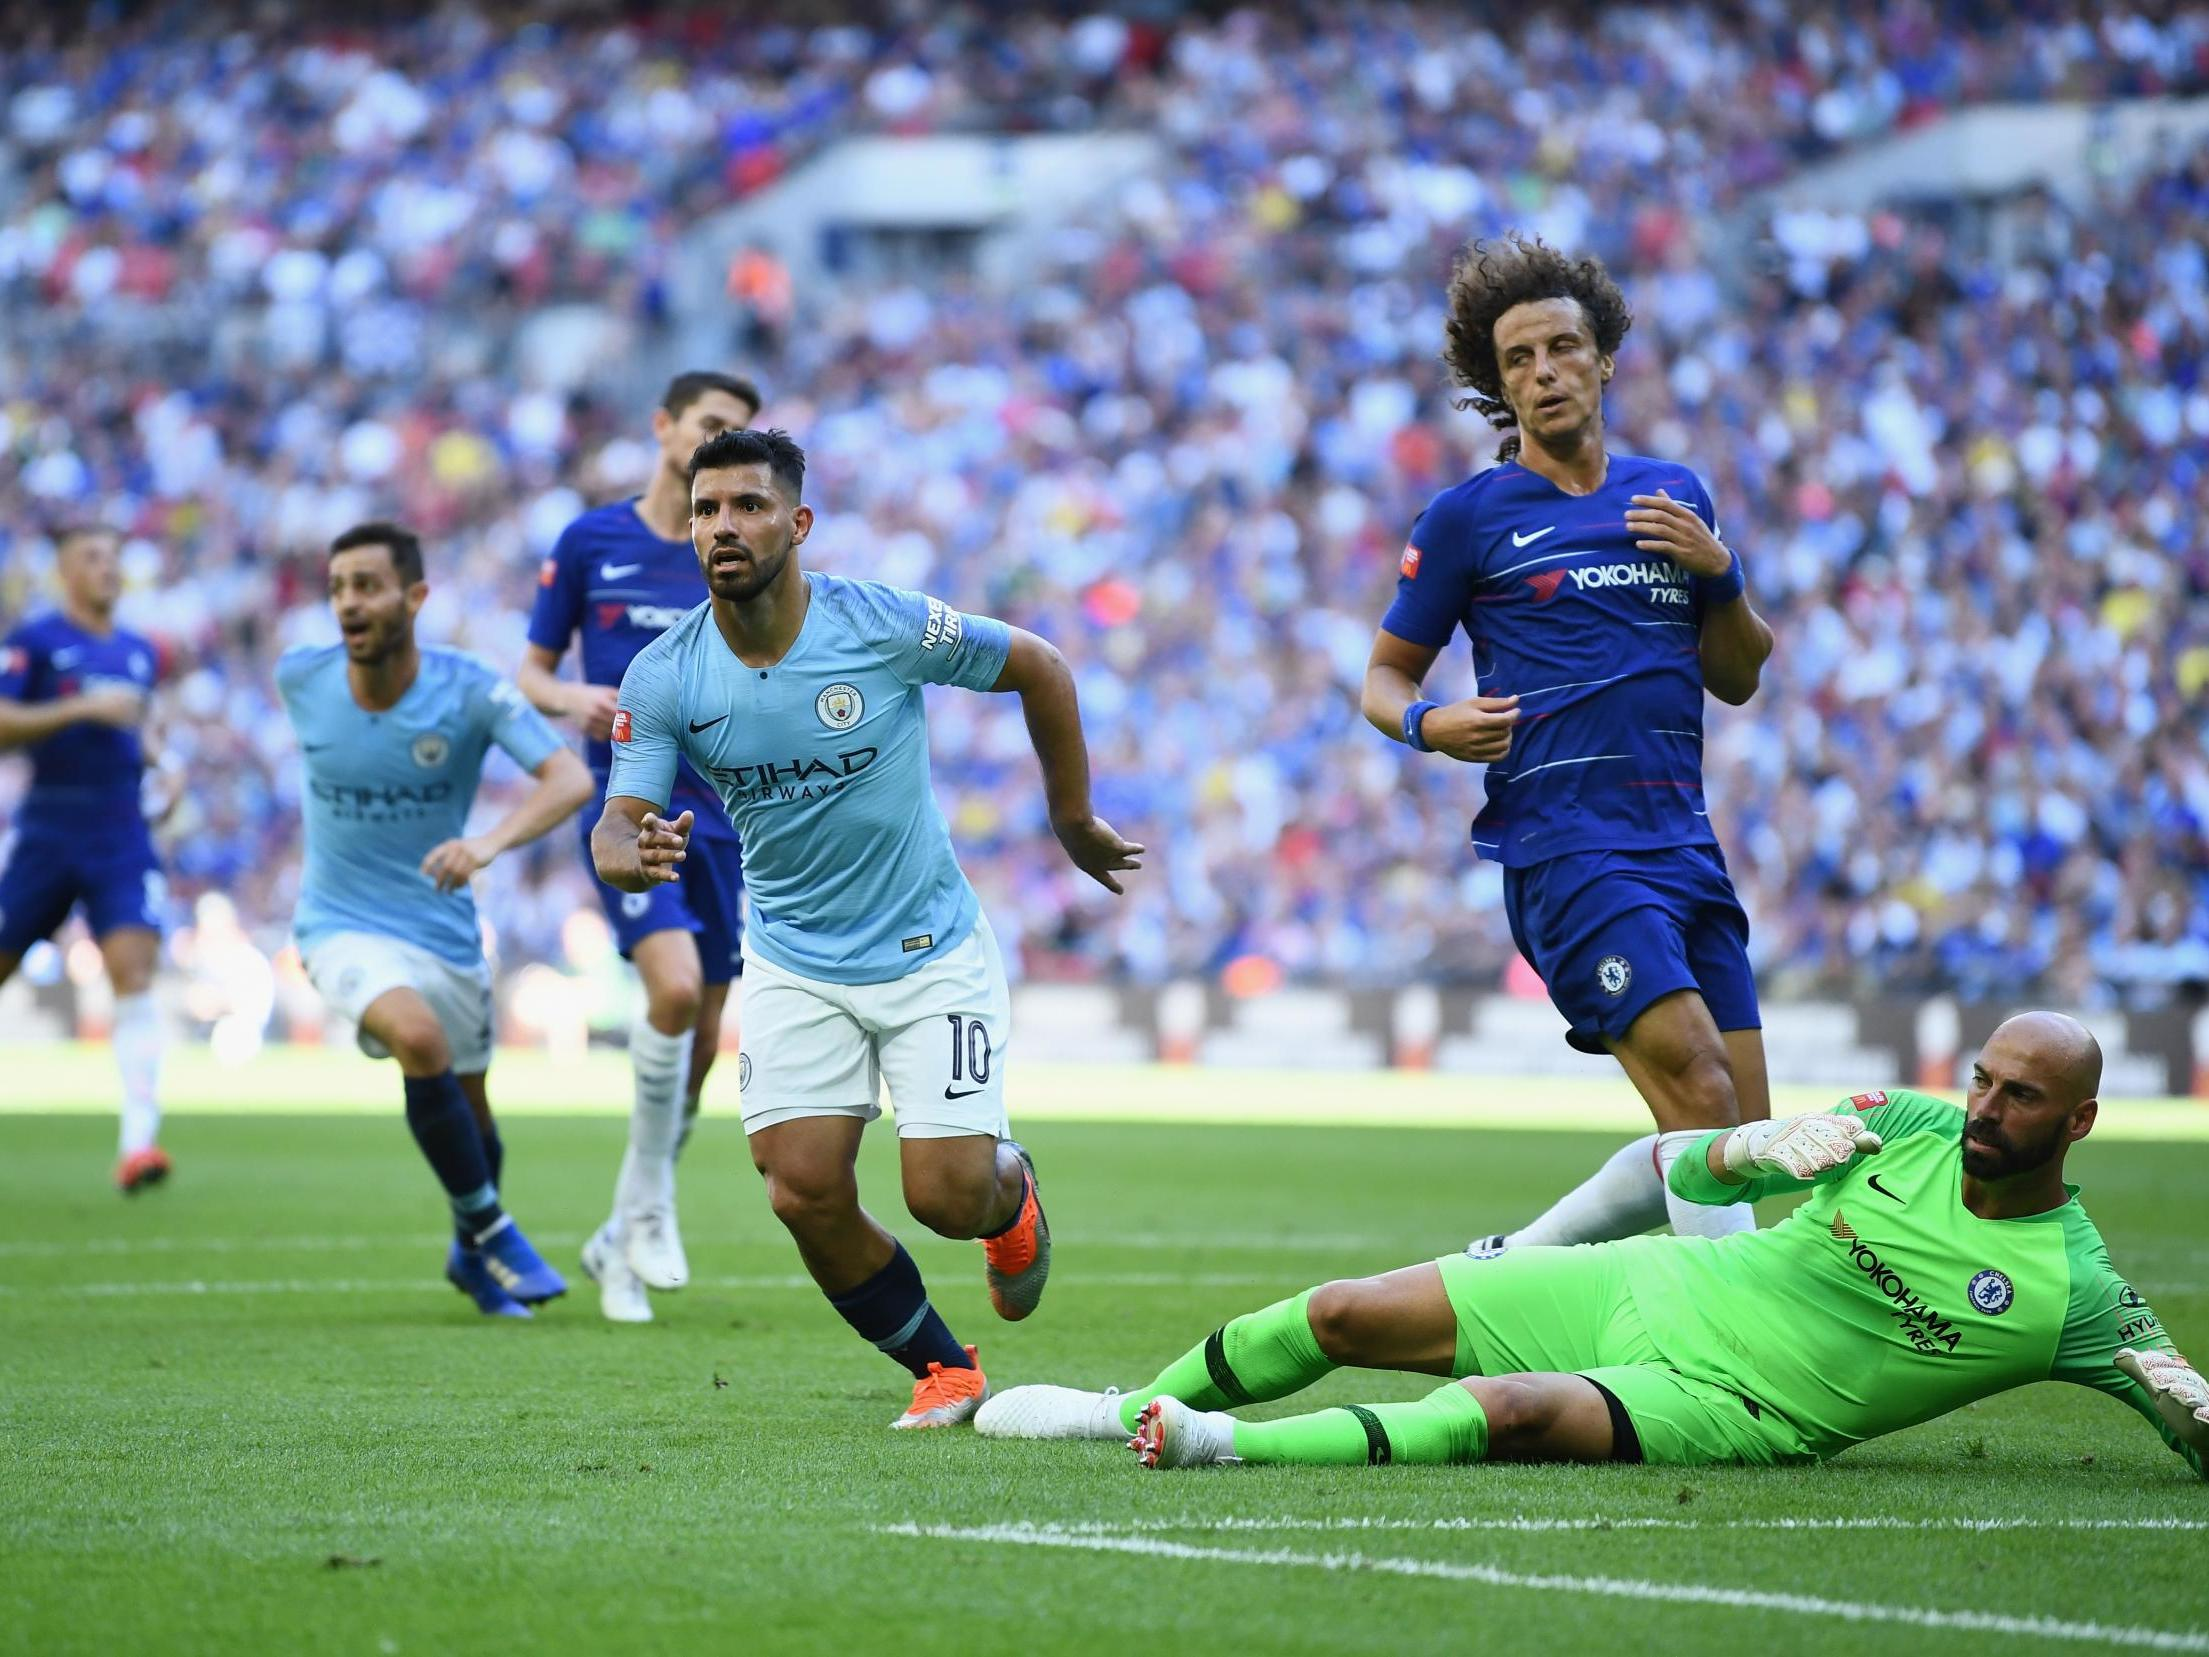 City Chelsea: New Season, Same Old Manchester City As Sergio Aguero